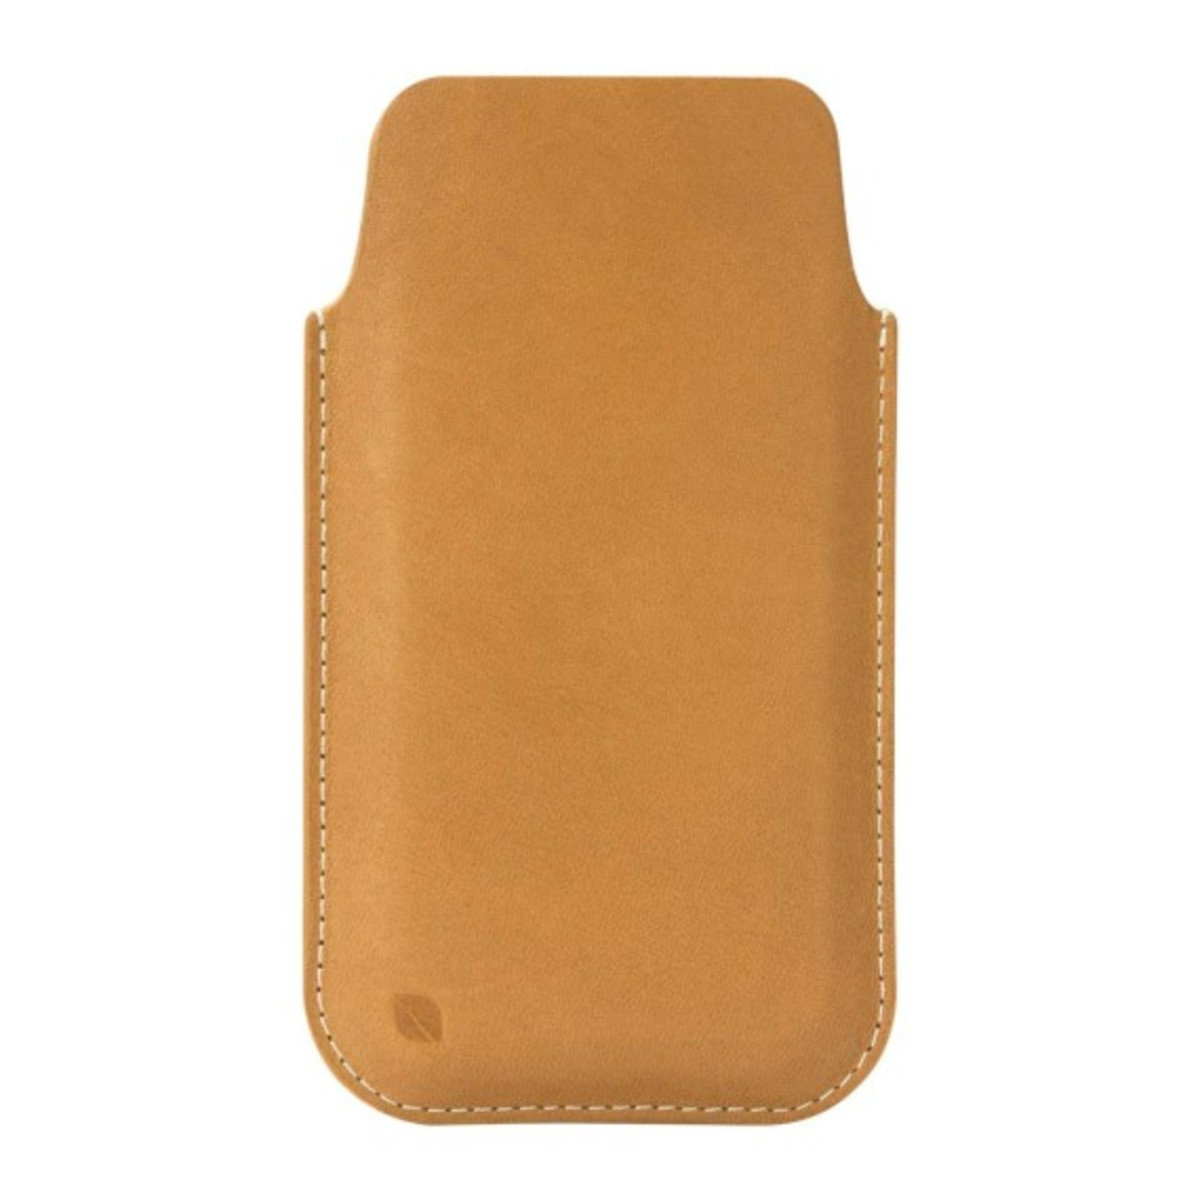 incase-iphone-5-leather-pouch-04